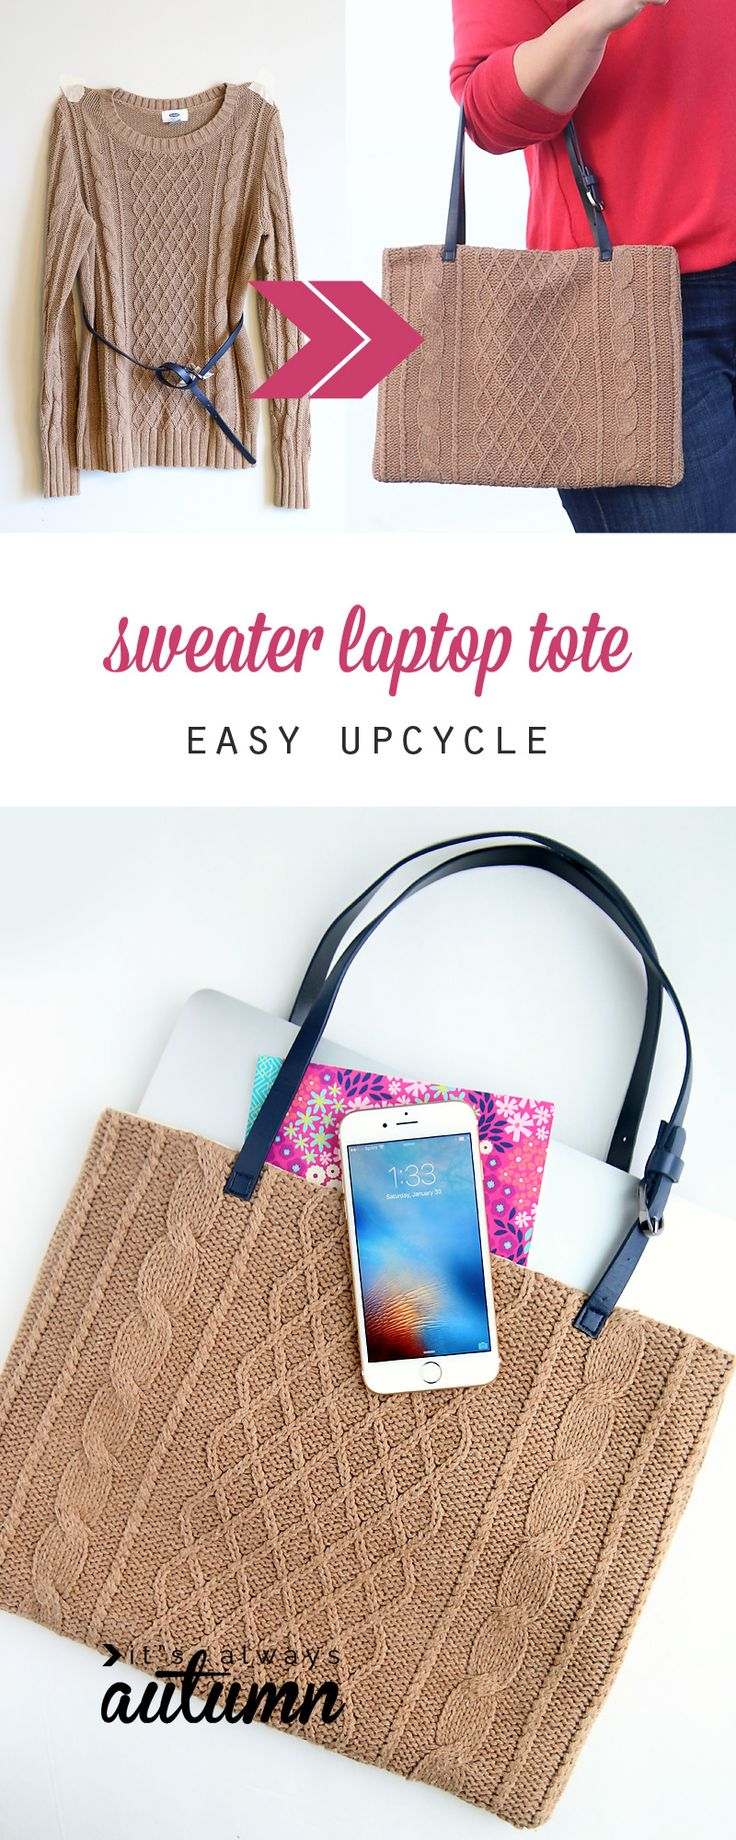 What a fun idea! Make a DIY laptop tote from a thrifted sweater. She even used a belt for the handles! The sewing tutorial looks super easy.